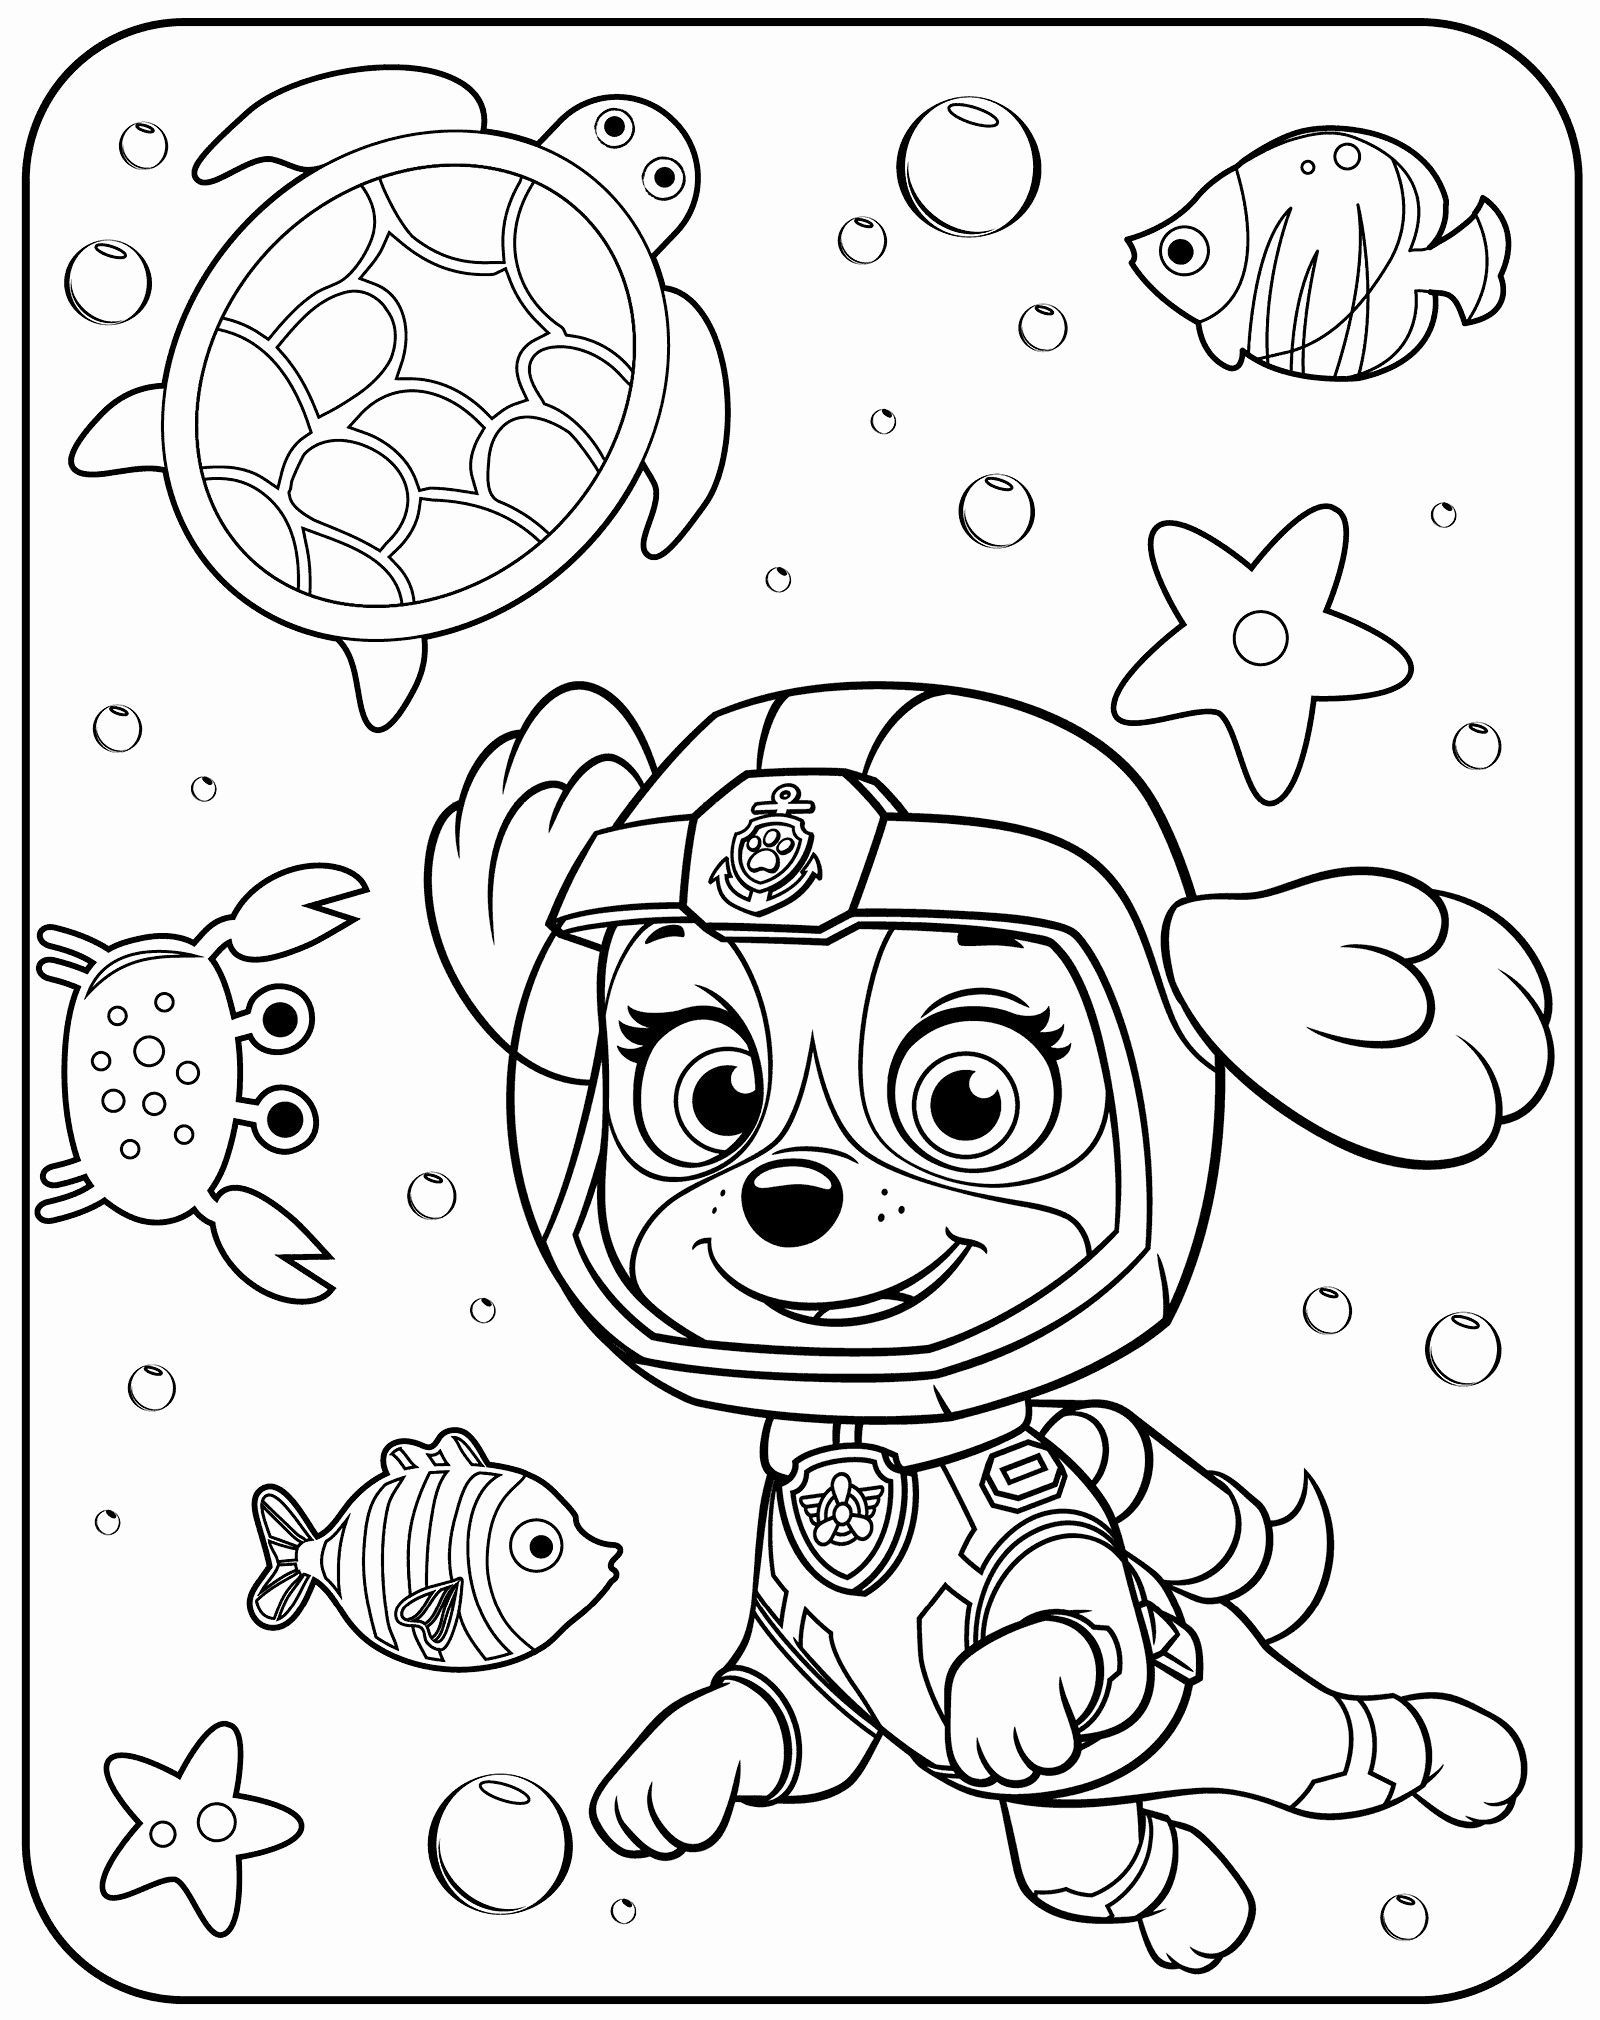 8 Awesome Photos Of Paw Patrol Coloring Sheets #coloringsheets 8